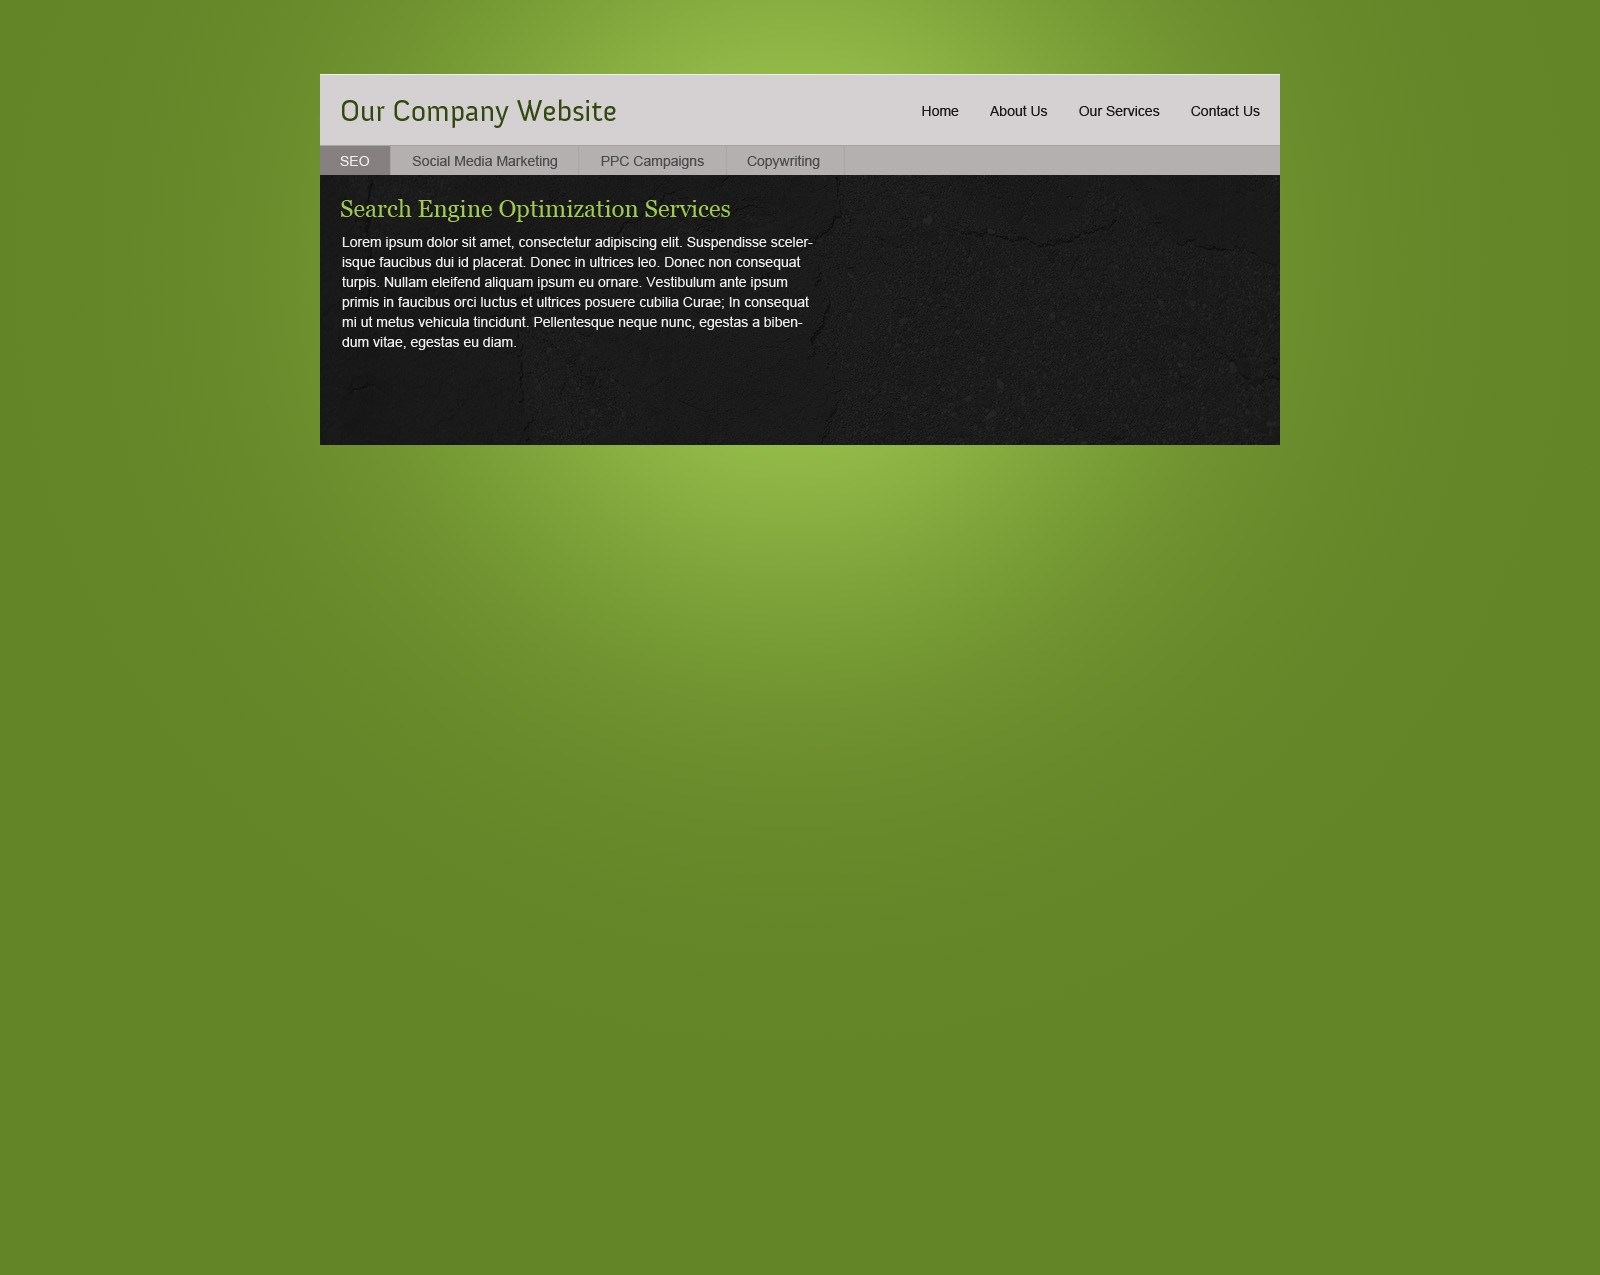 Design a Green Corporate Layout in Photoshop - DesignM.ag